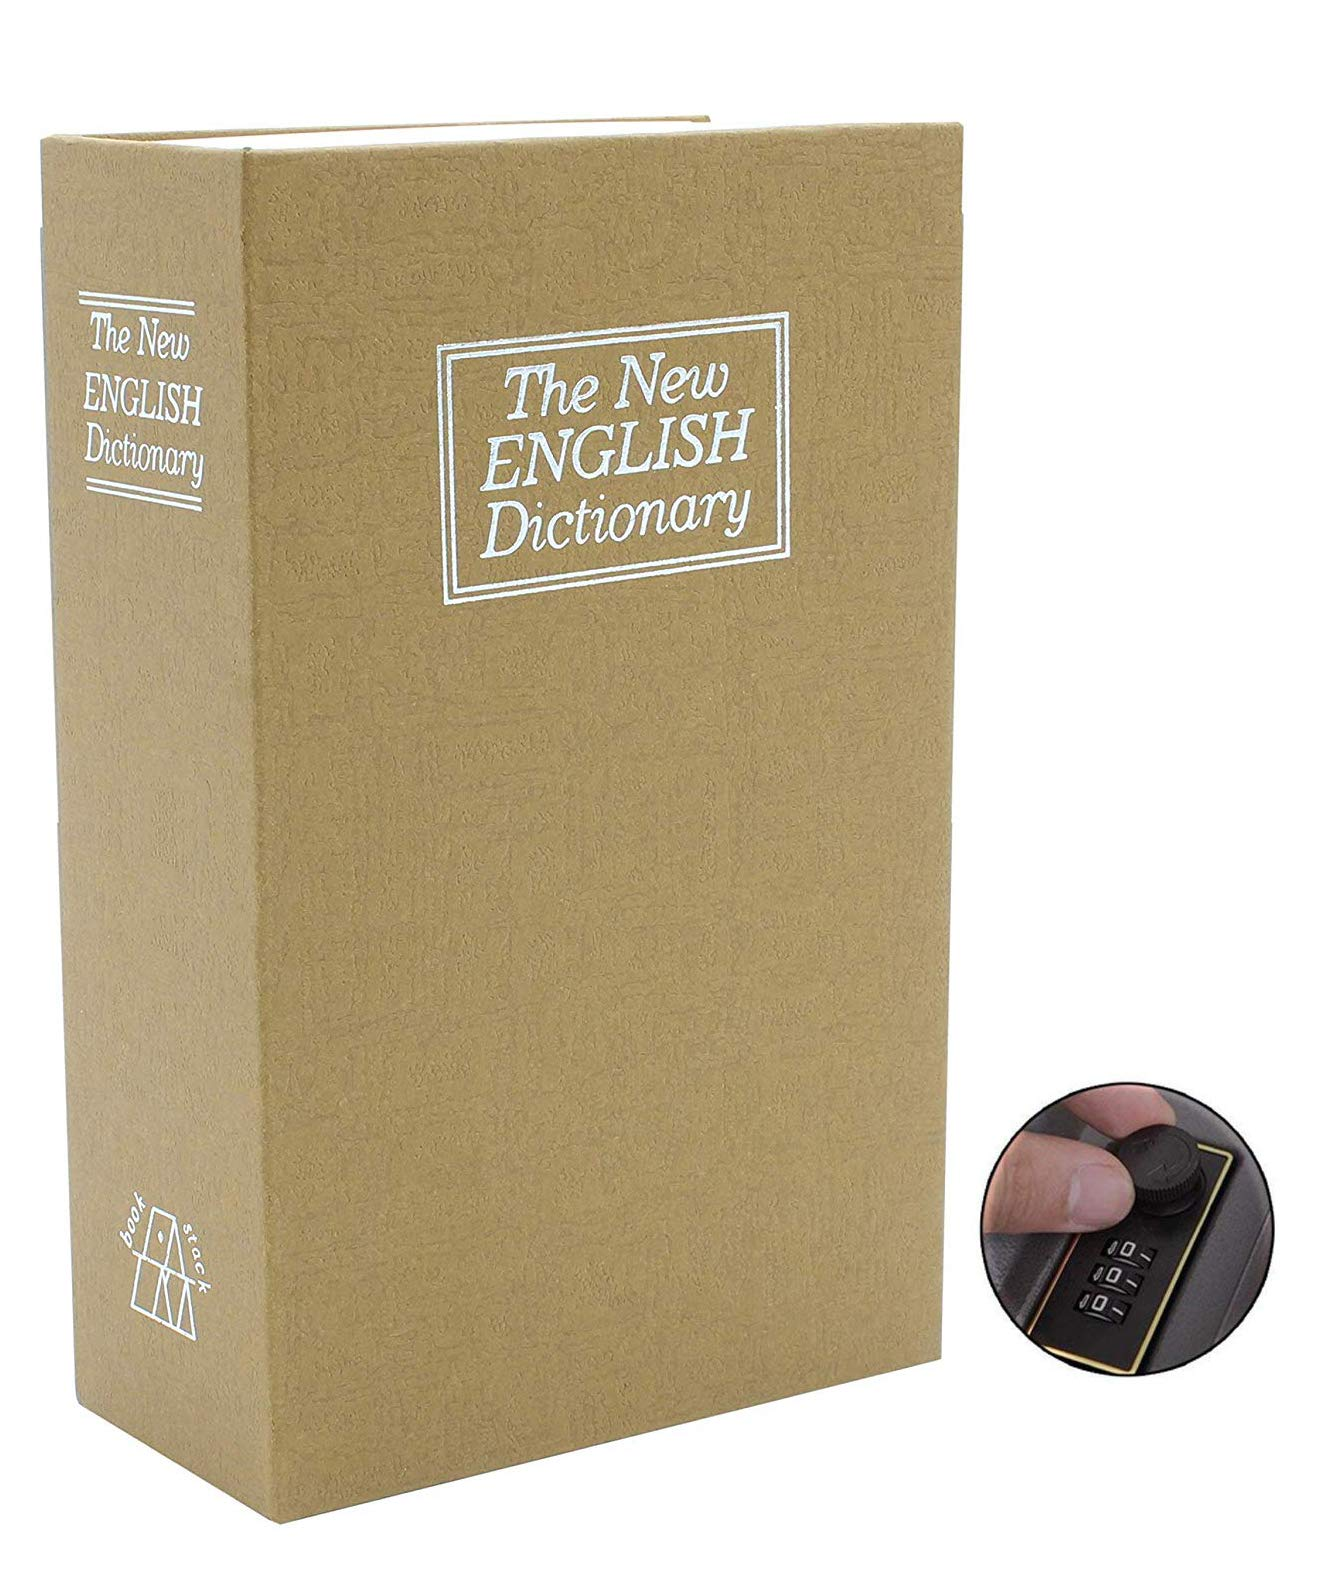 Book Safe Box Dictionary Diversion Lock Box with Combination Closing - Portable Book Safe - Store Money, Jewelry, and Other Documents 10.5'' x 8.00'' x 2.75'' (Tan, Large) by Royal Brands